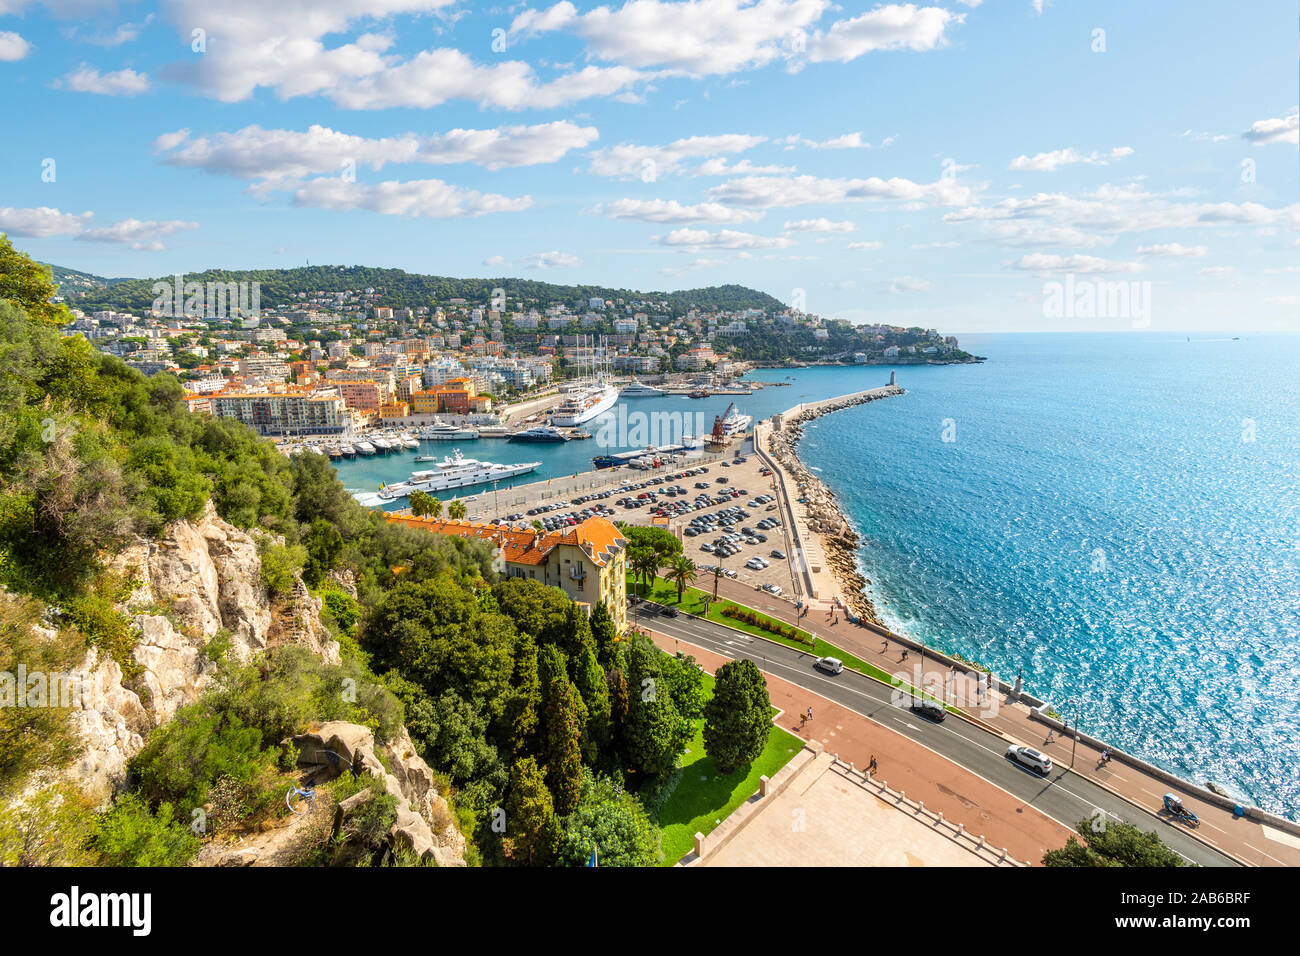 View from Castle Hill overlooking The Mediterranean Sea and the old harbor and port on the French Riviera, in Nice France. Stock Photo